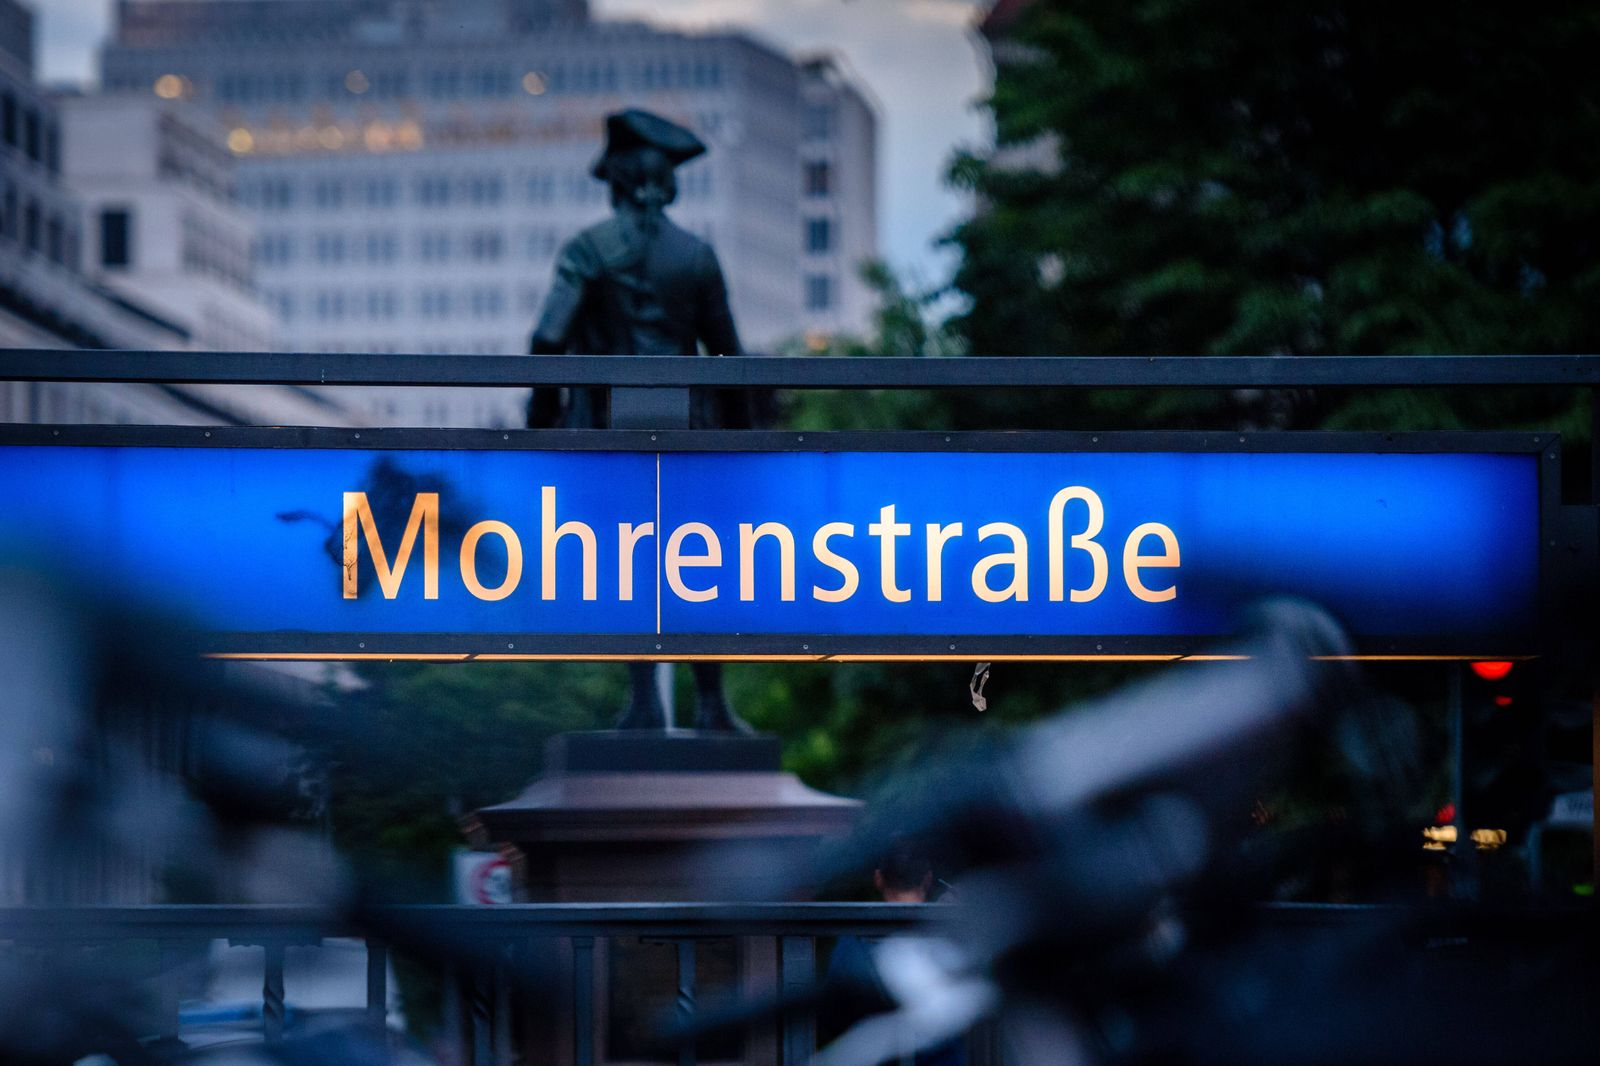 July 14, 2020, Berlin, Berlin, Germany: The entrance of the underground station Mohrenstrasse can be seen in front of a